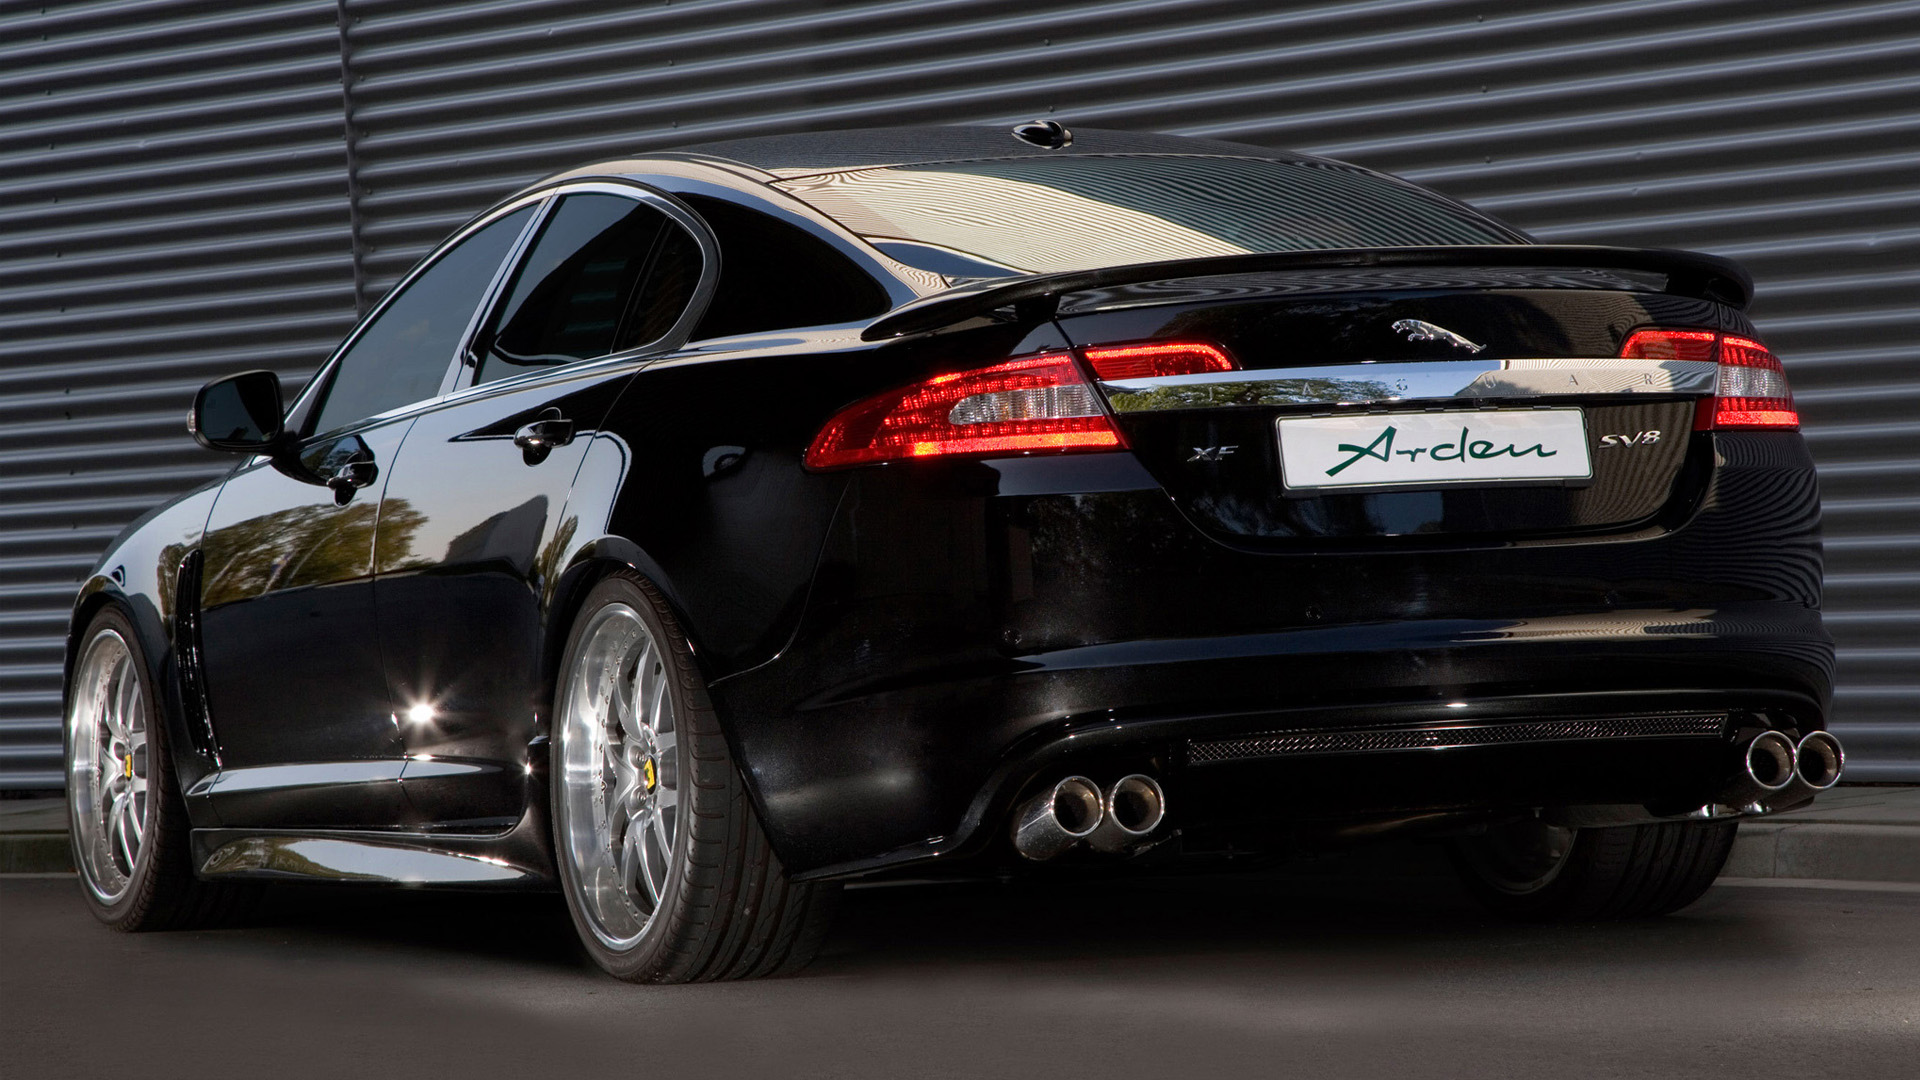 Car Wallpapers Jaguar XF SV8